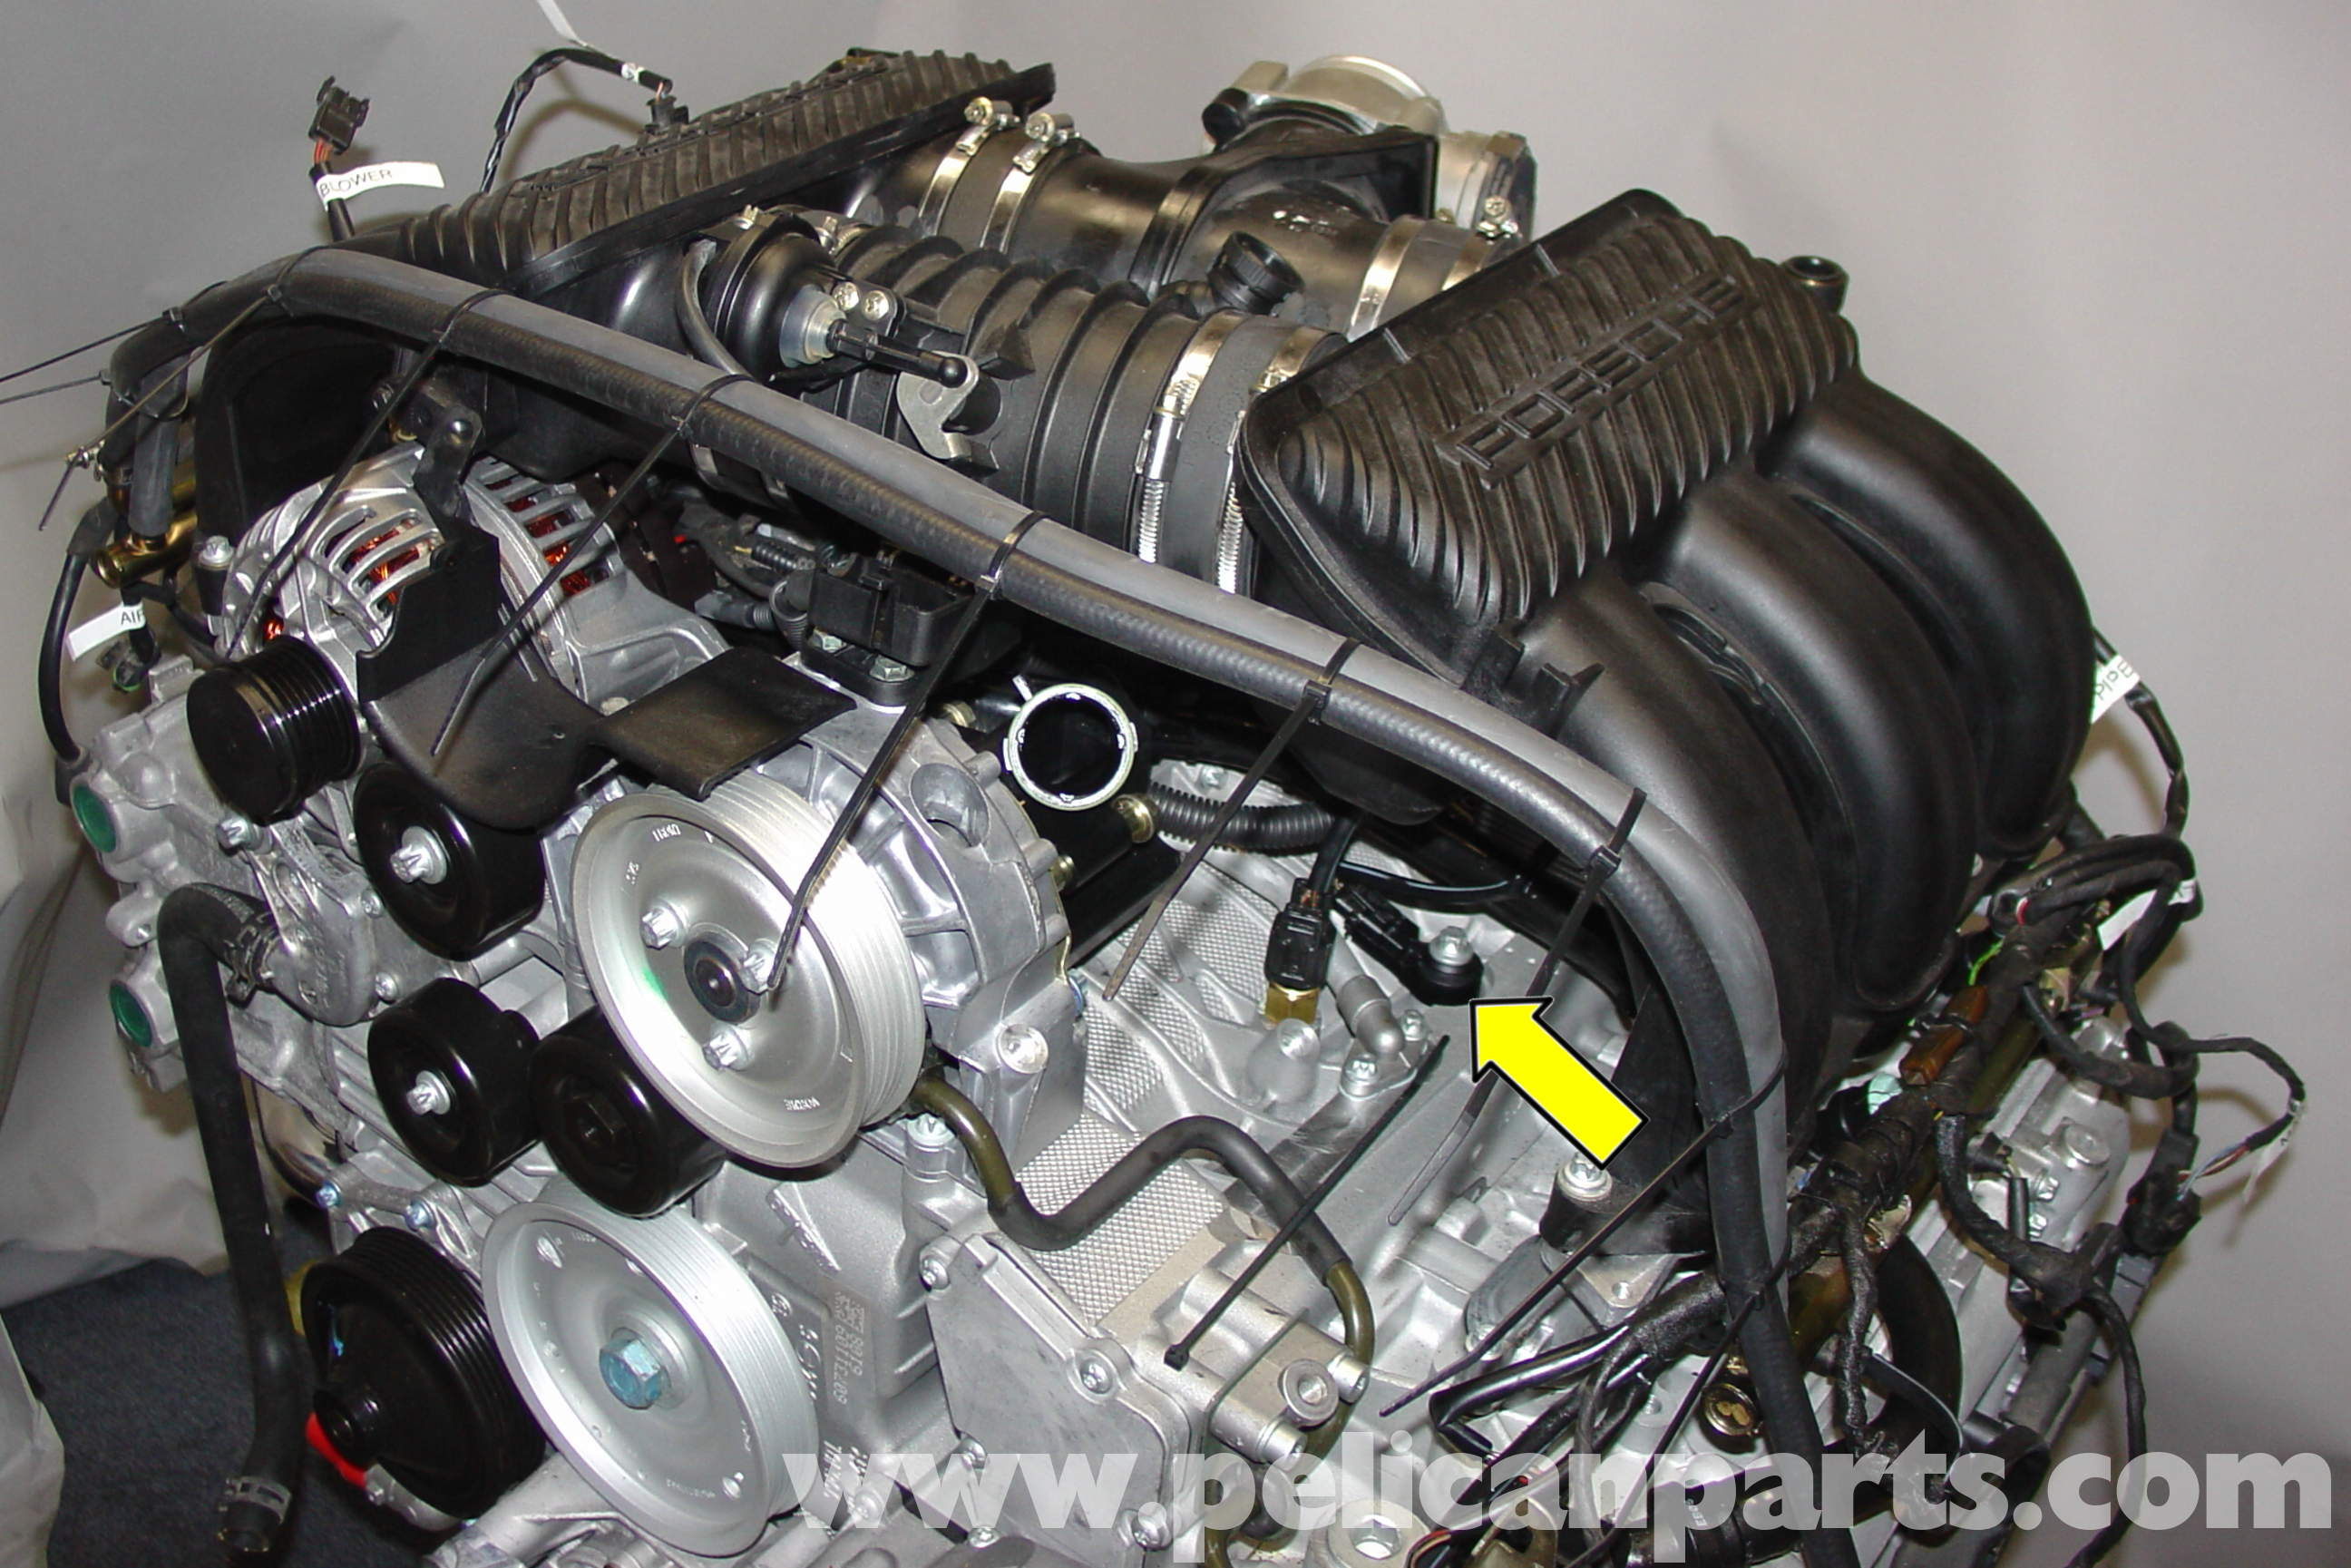 2000 Porsche Boxster Engine Diagram Wiring Library Cars 986 987 2004 12